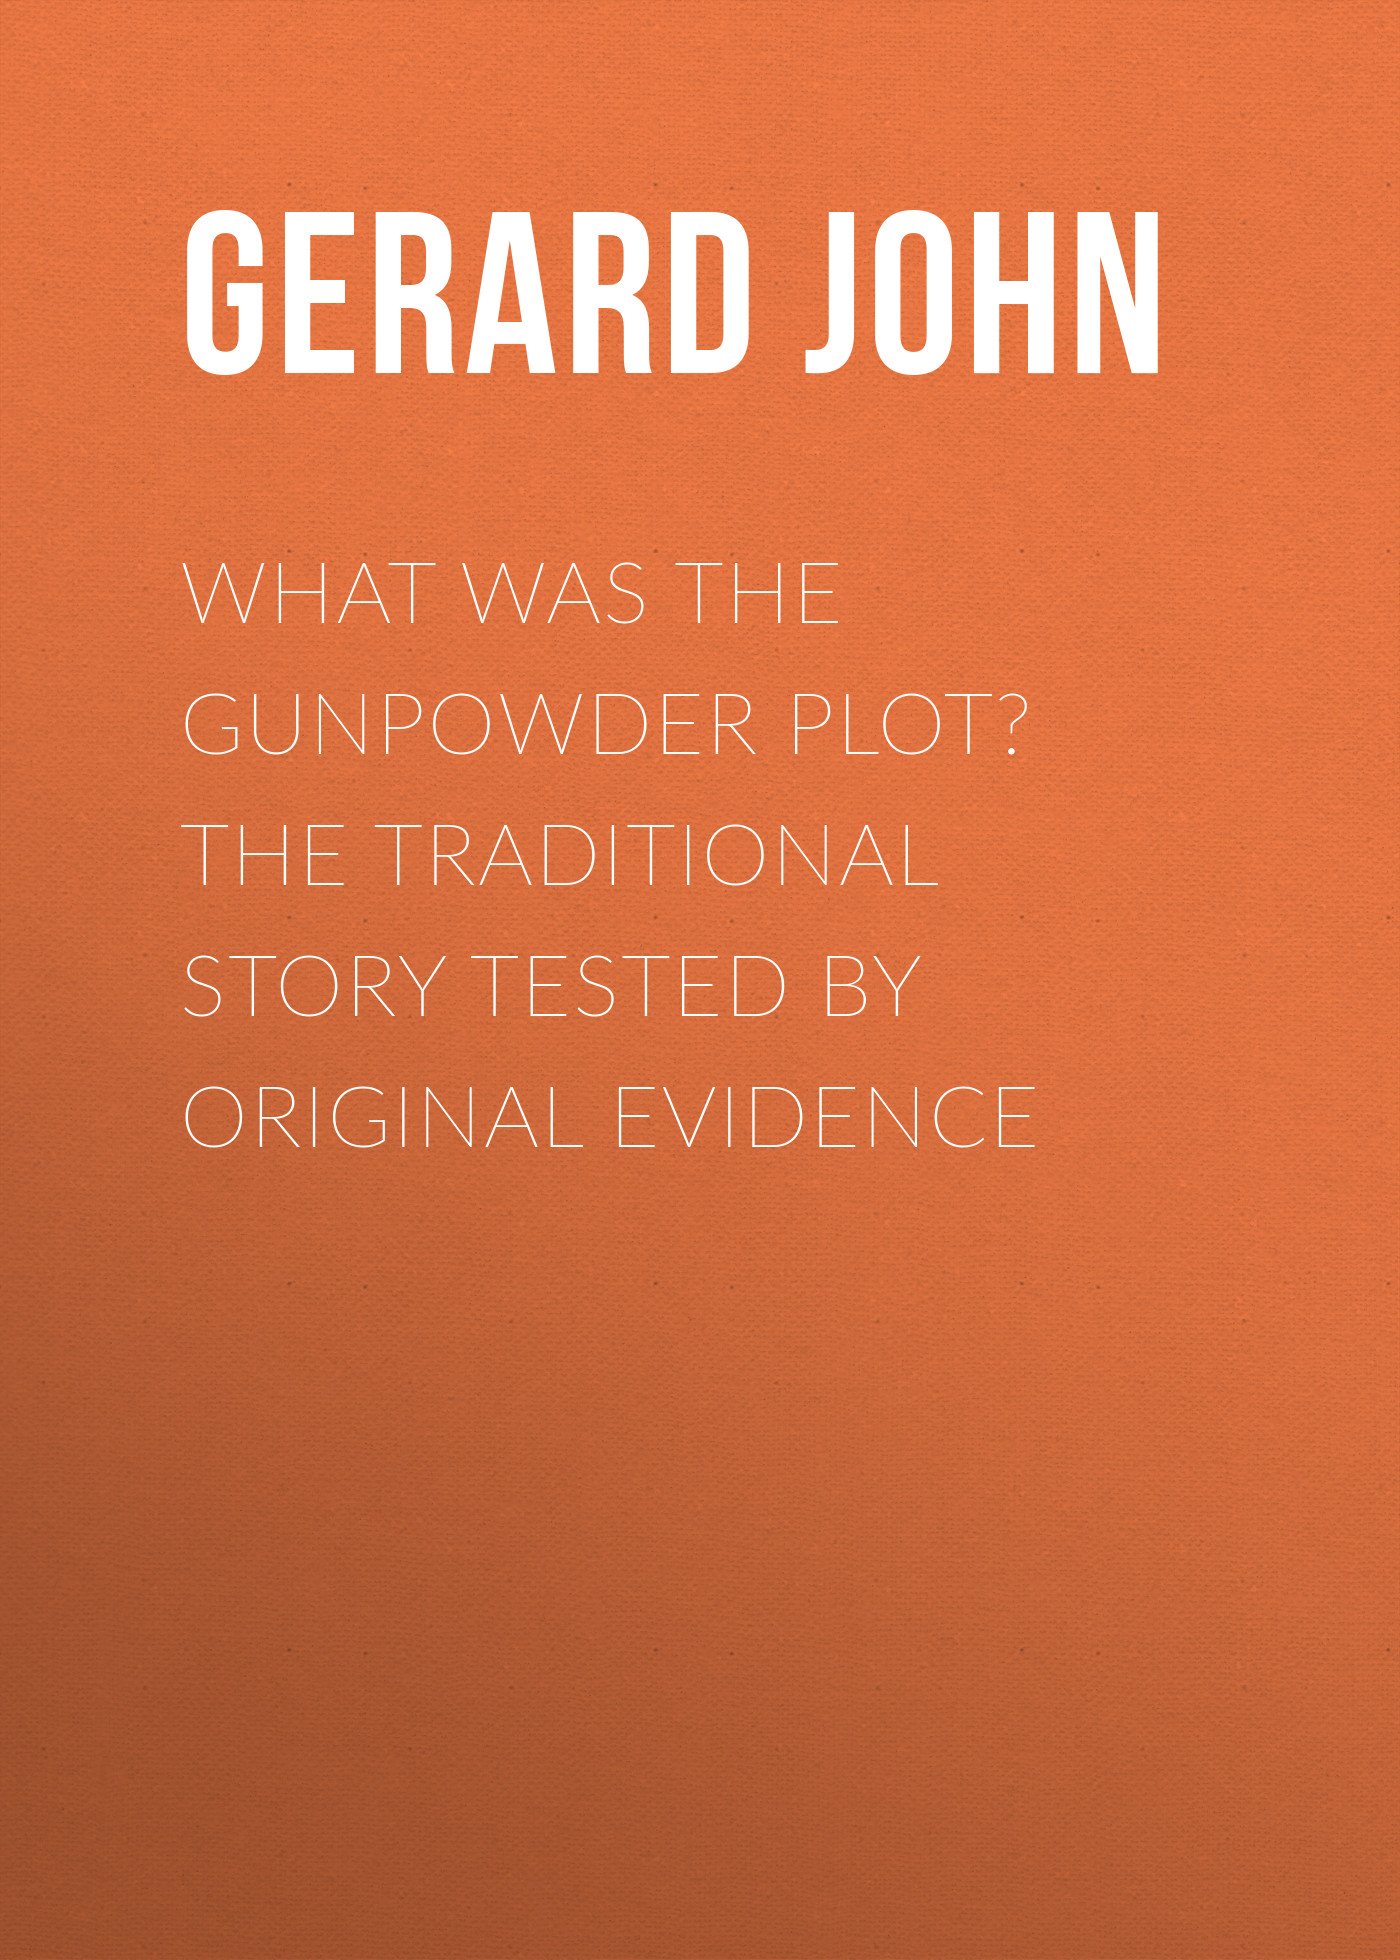 Gerard John What was the Gunpowder Plot? The Traditional Story Tested by Original Evidence gardiner samuel rawson what gunpowder plot was